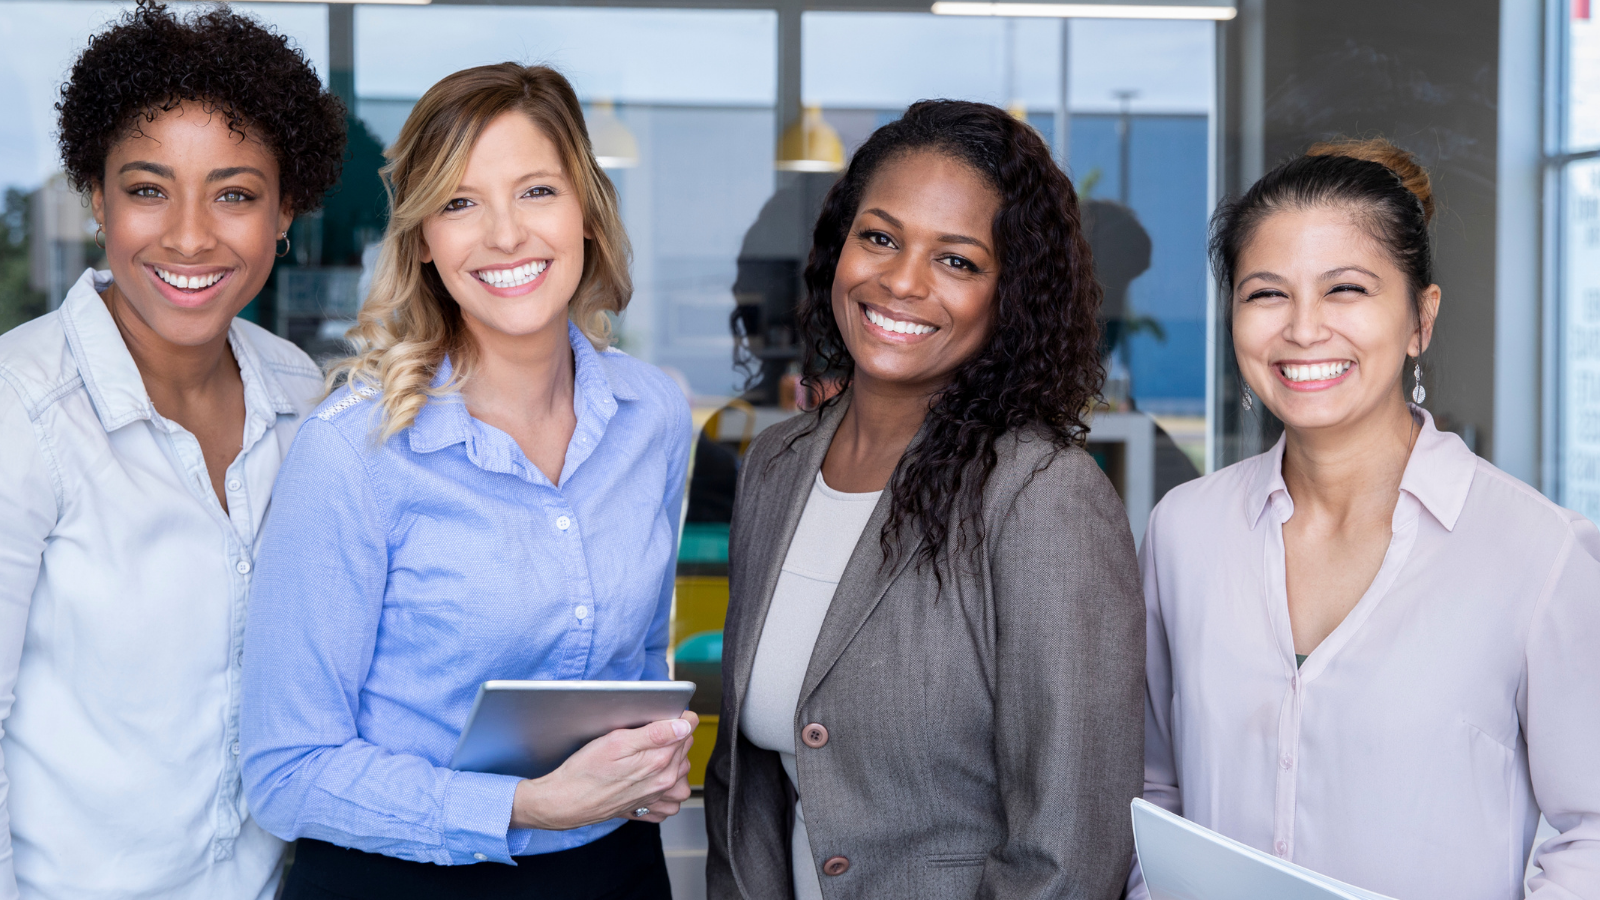 #WomeninSales Month: Working in Sales as a Woman